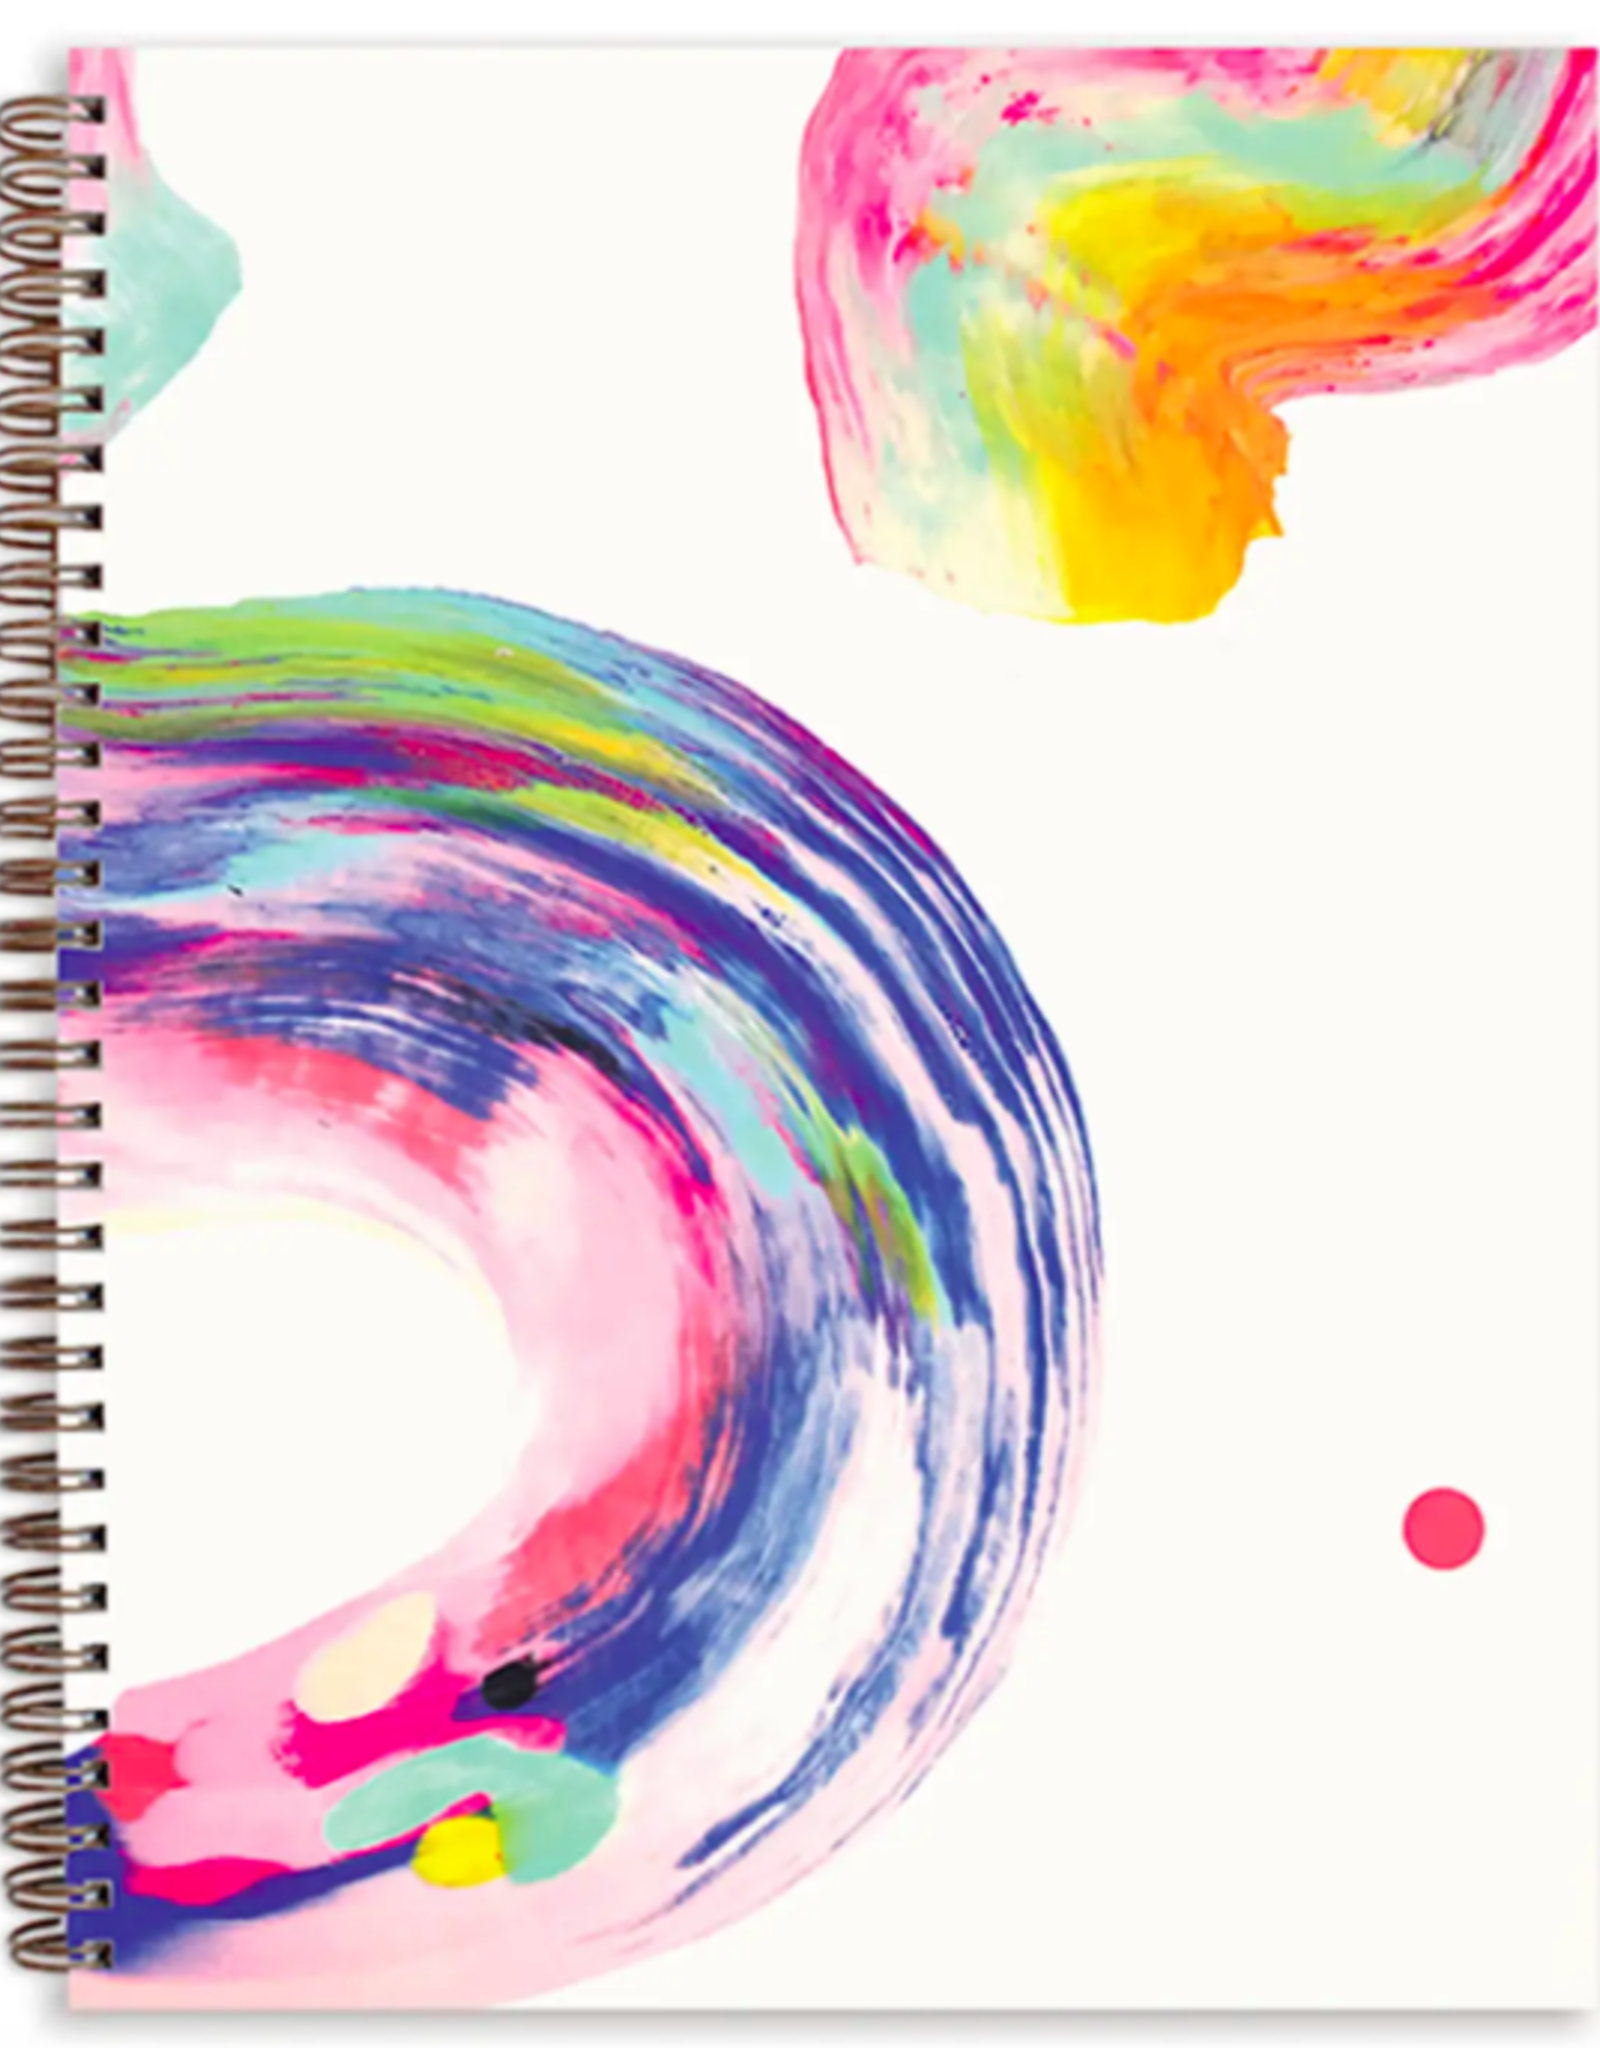 Candy Swirl Painted Sketchbook